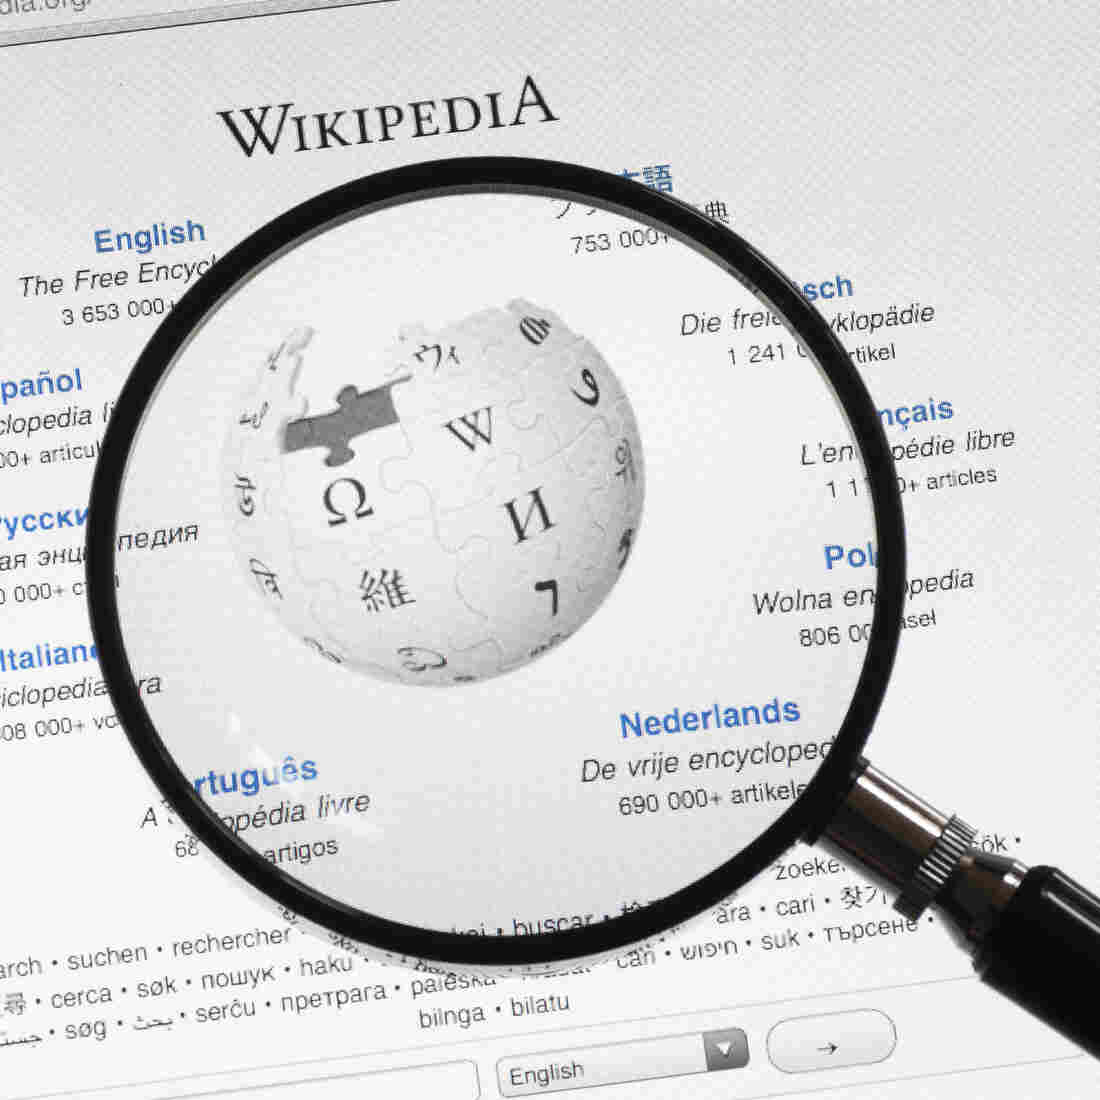 Don't You Dare Use 'Comprised Of' On Wikipedia: One Editor Will Take It Out